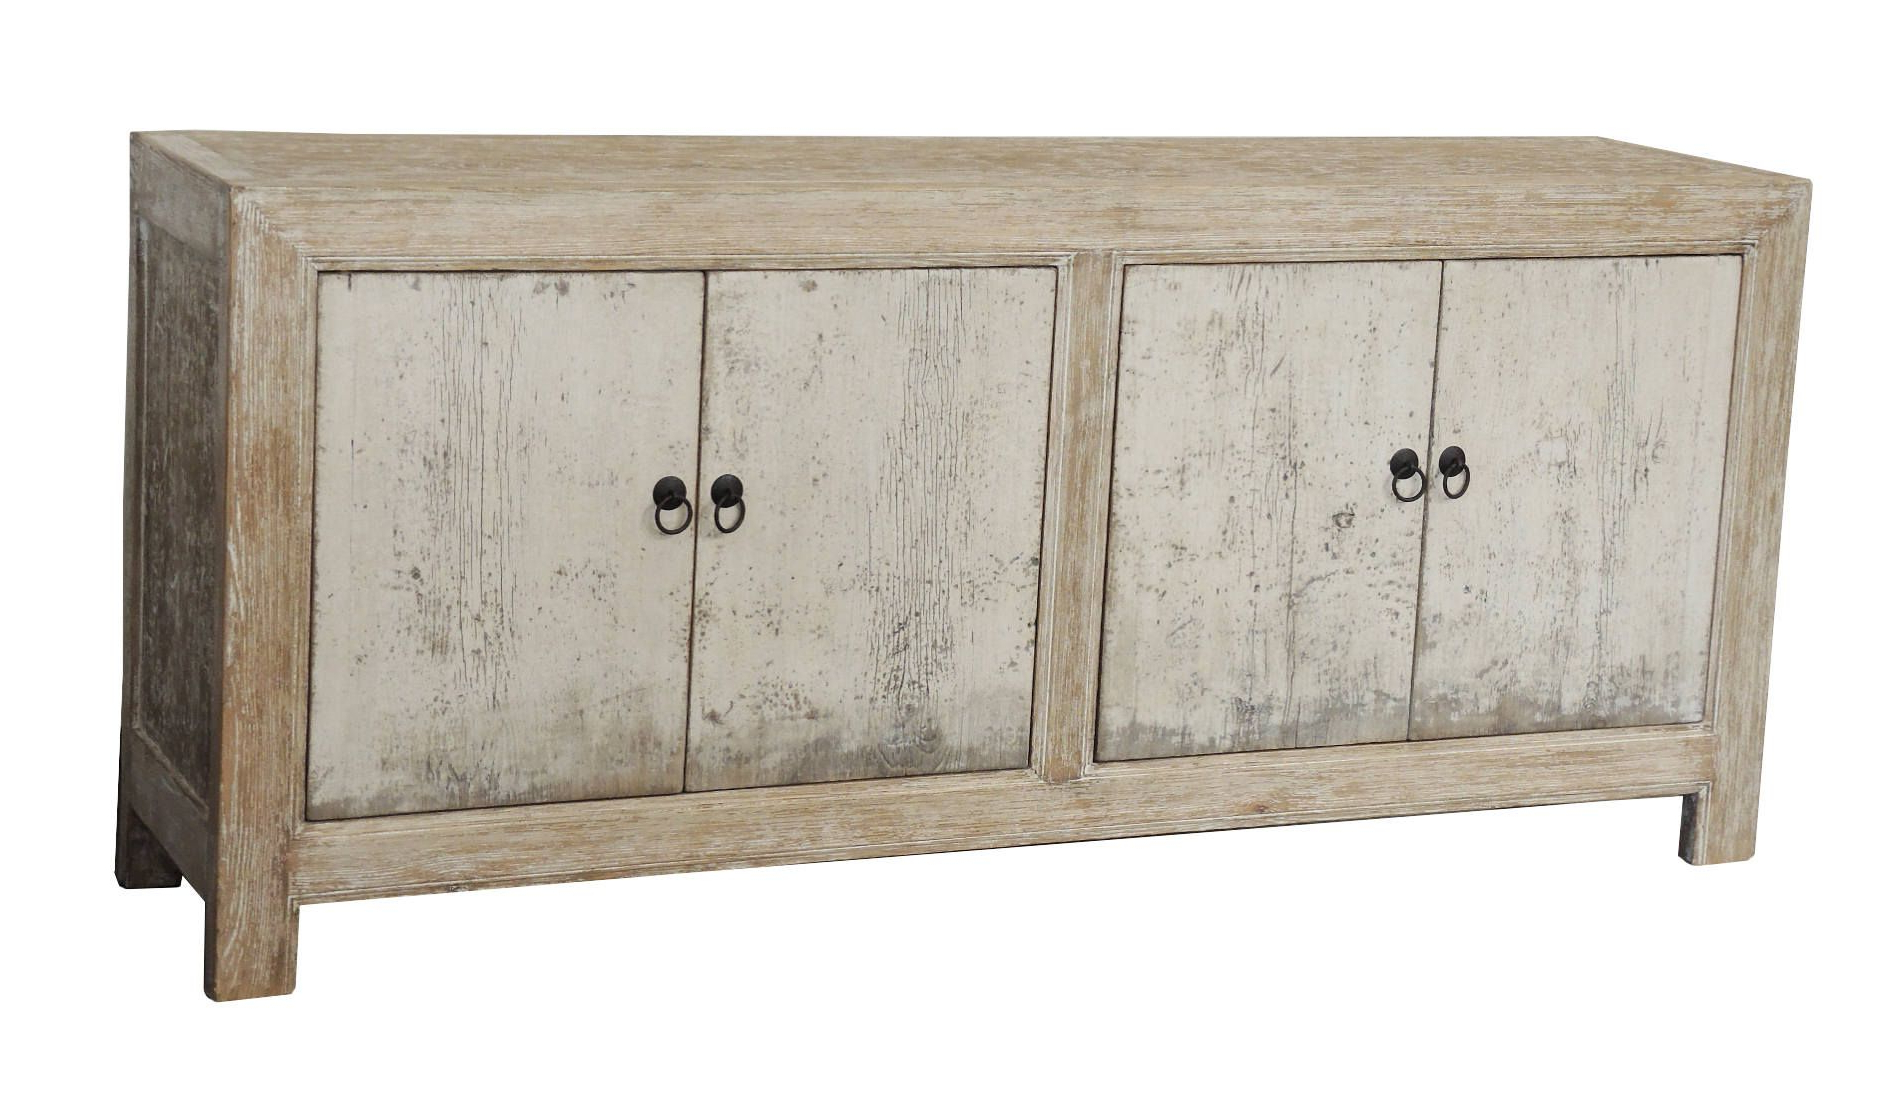 White Wash Distressed 4 Door Sideboard From Terra Nova Designs With Regard To Well Known White Wash 4 Door Sideboards (View 19 of 20)